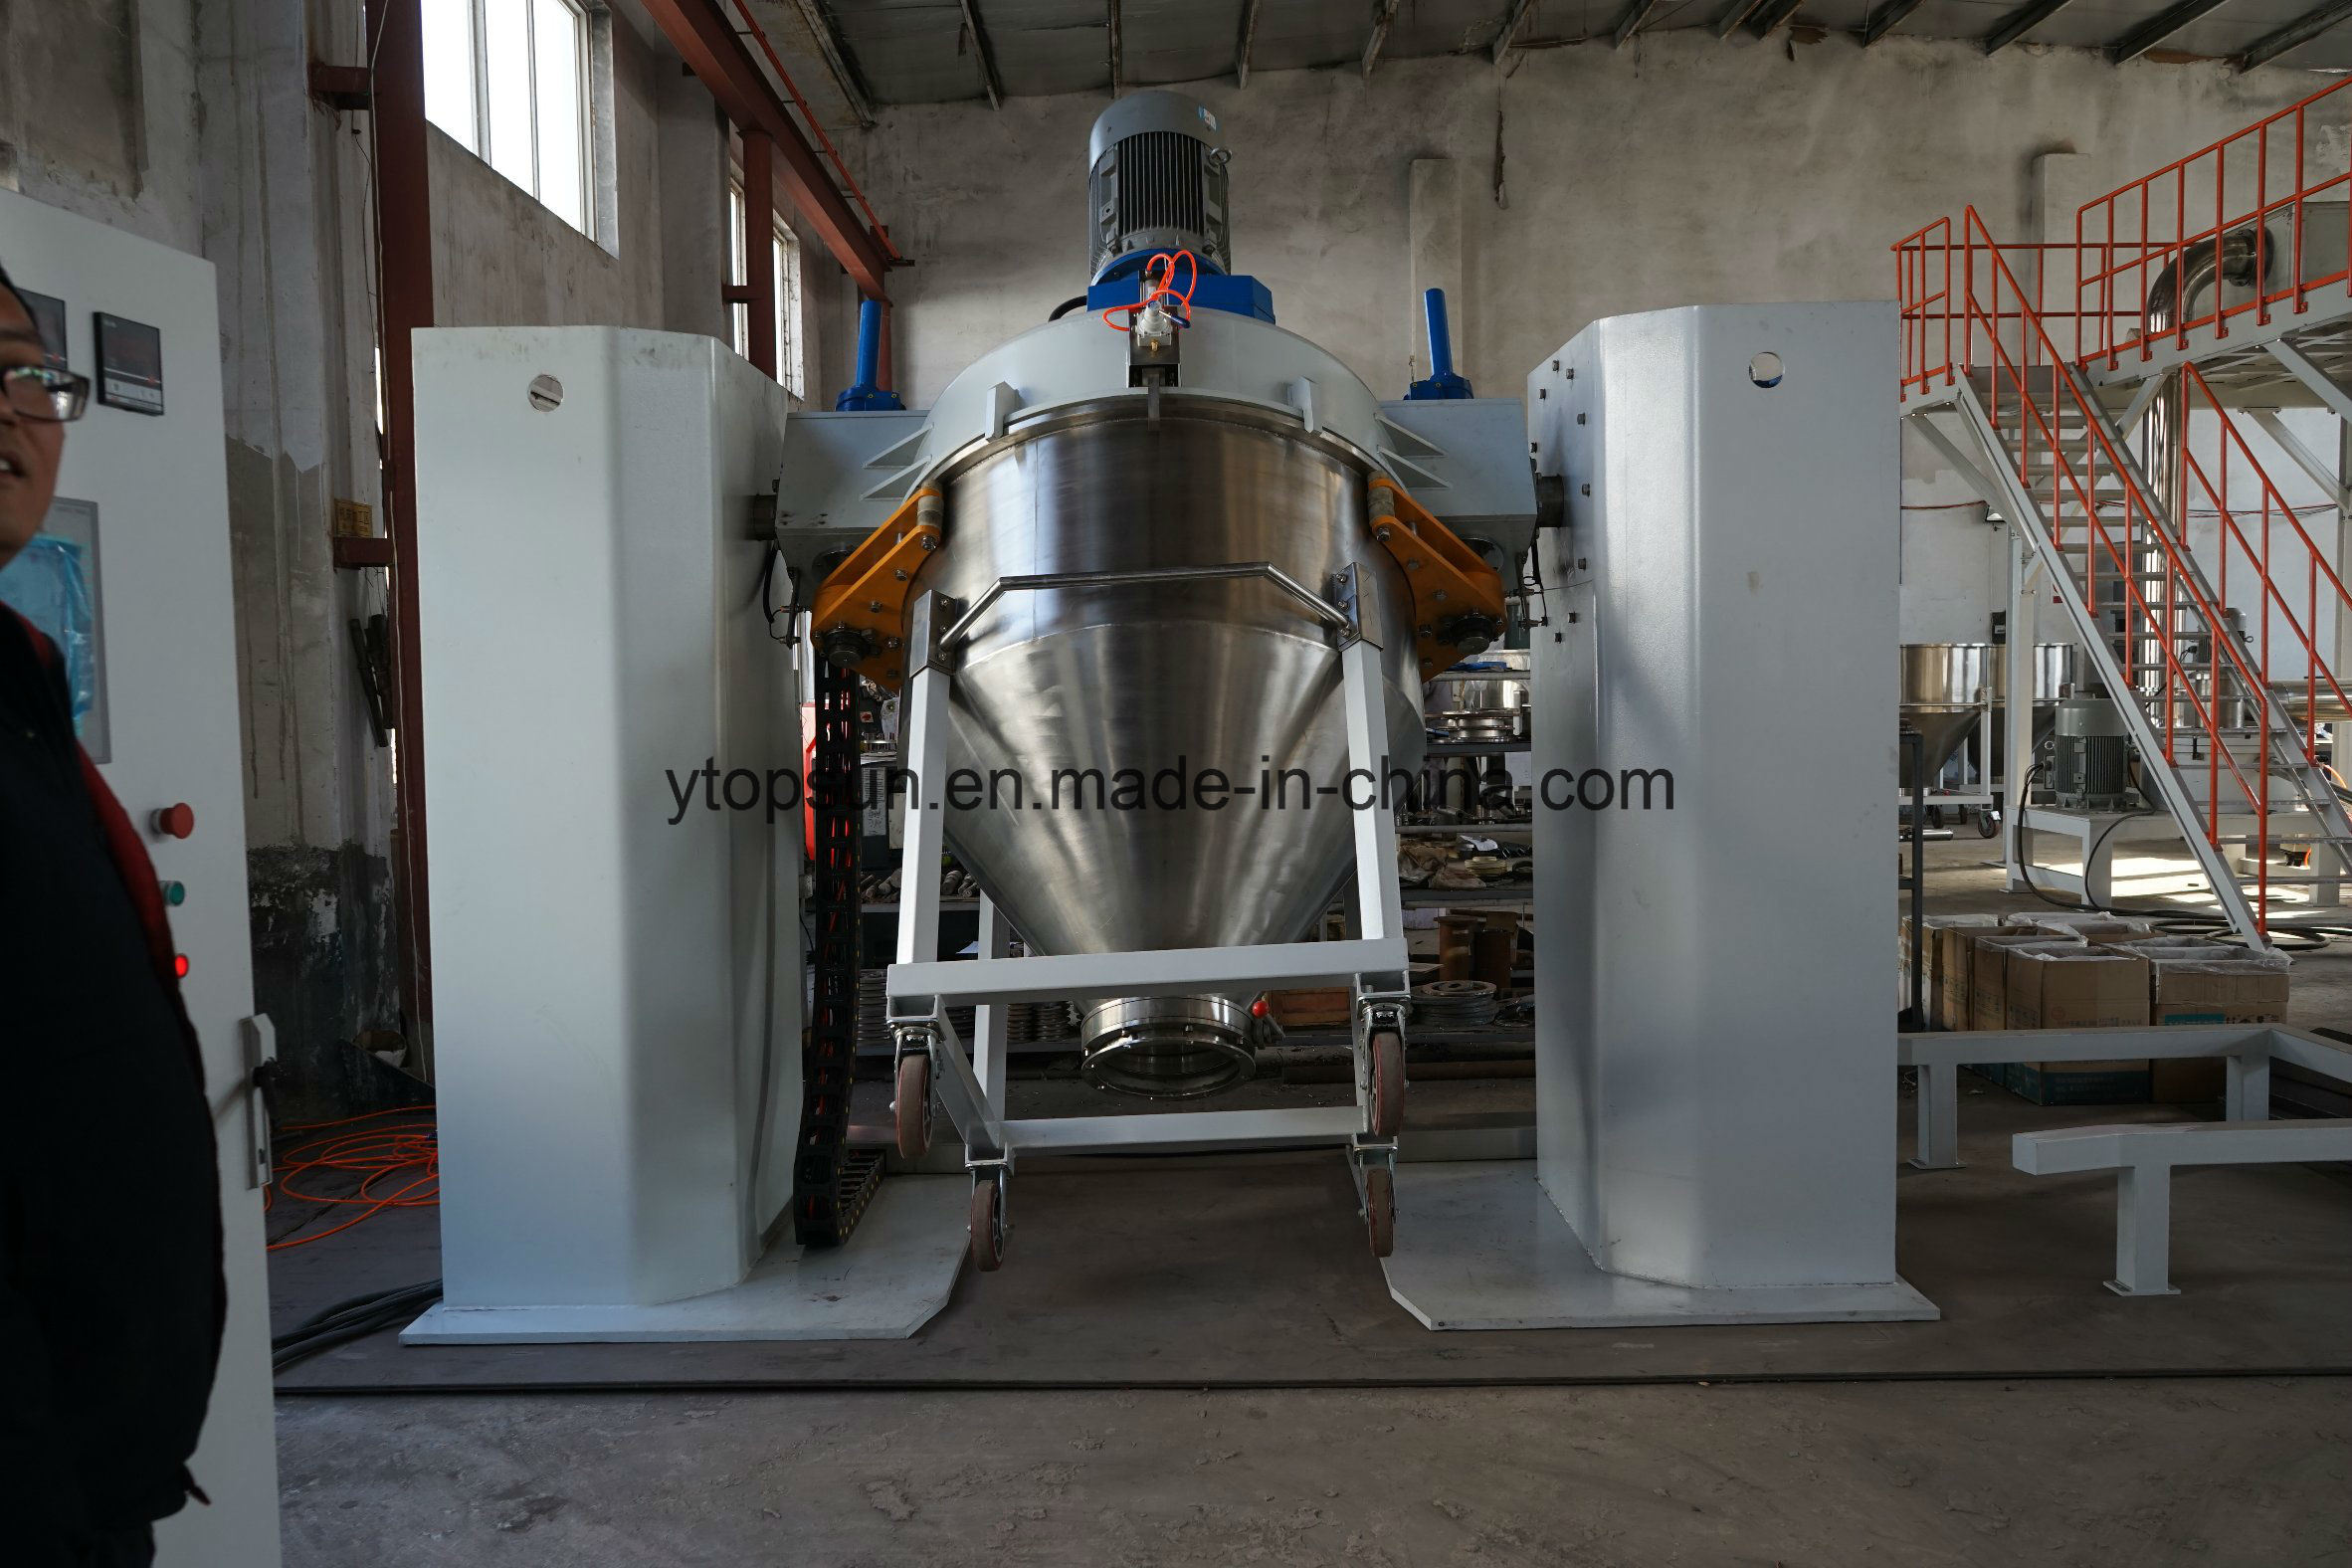 New Style Container Mixer for Powder Coating pictures & photos